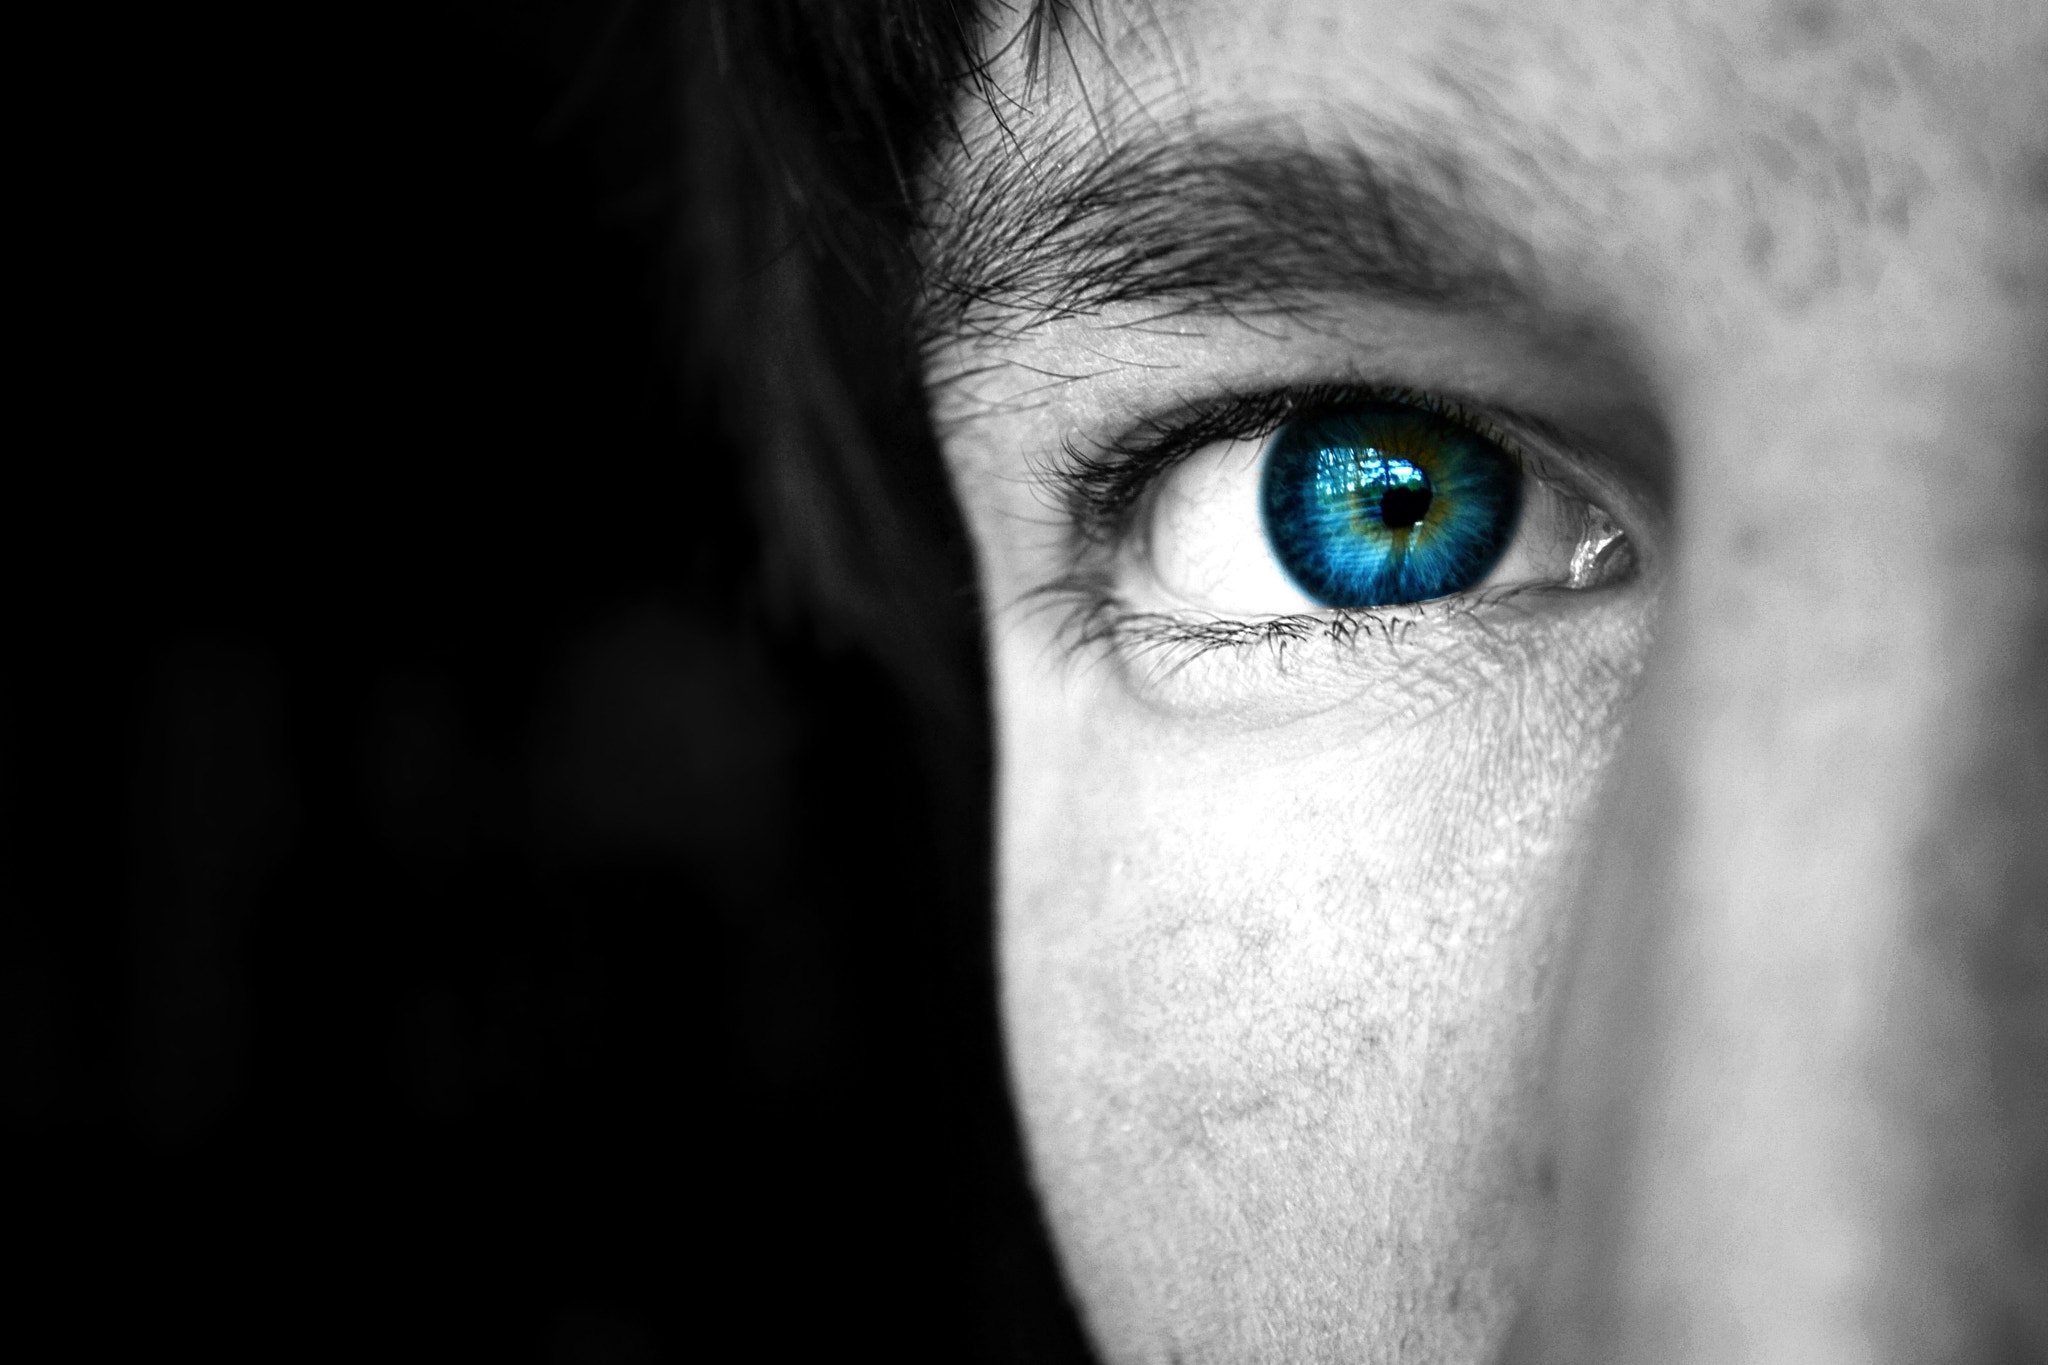 Photograph my eye by chris mcclanahan on 500px